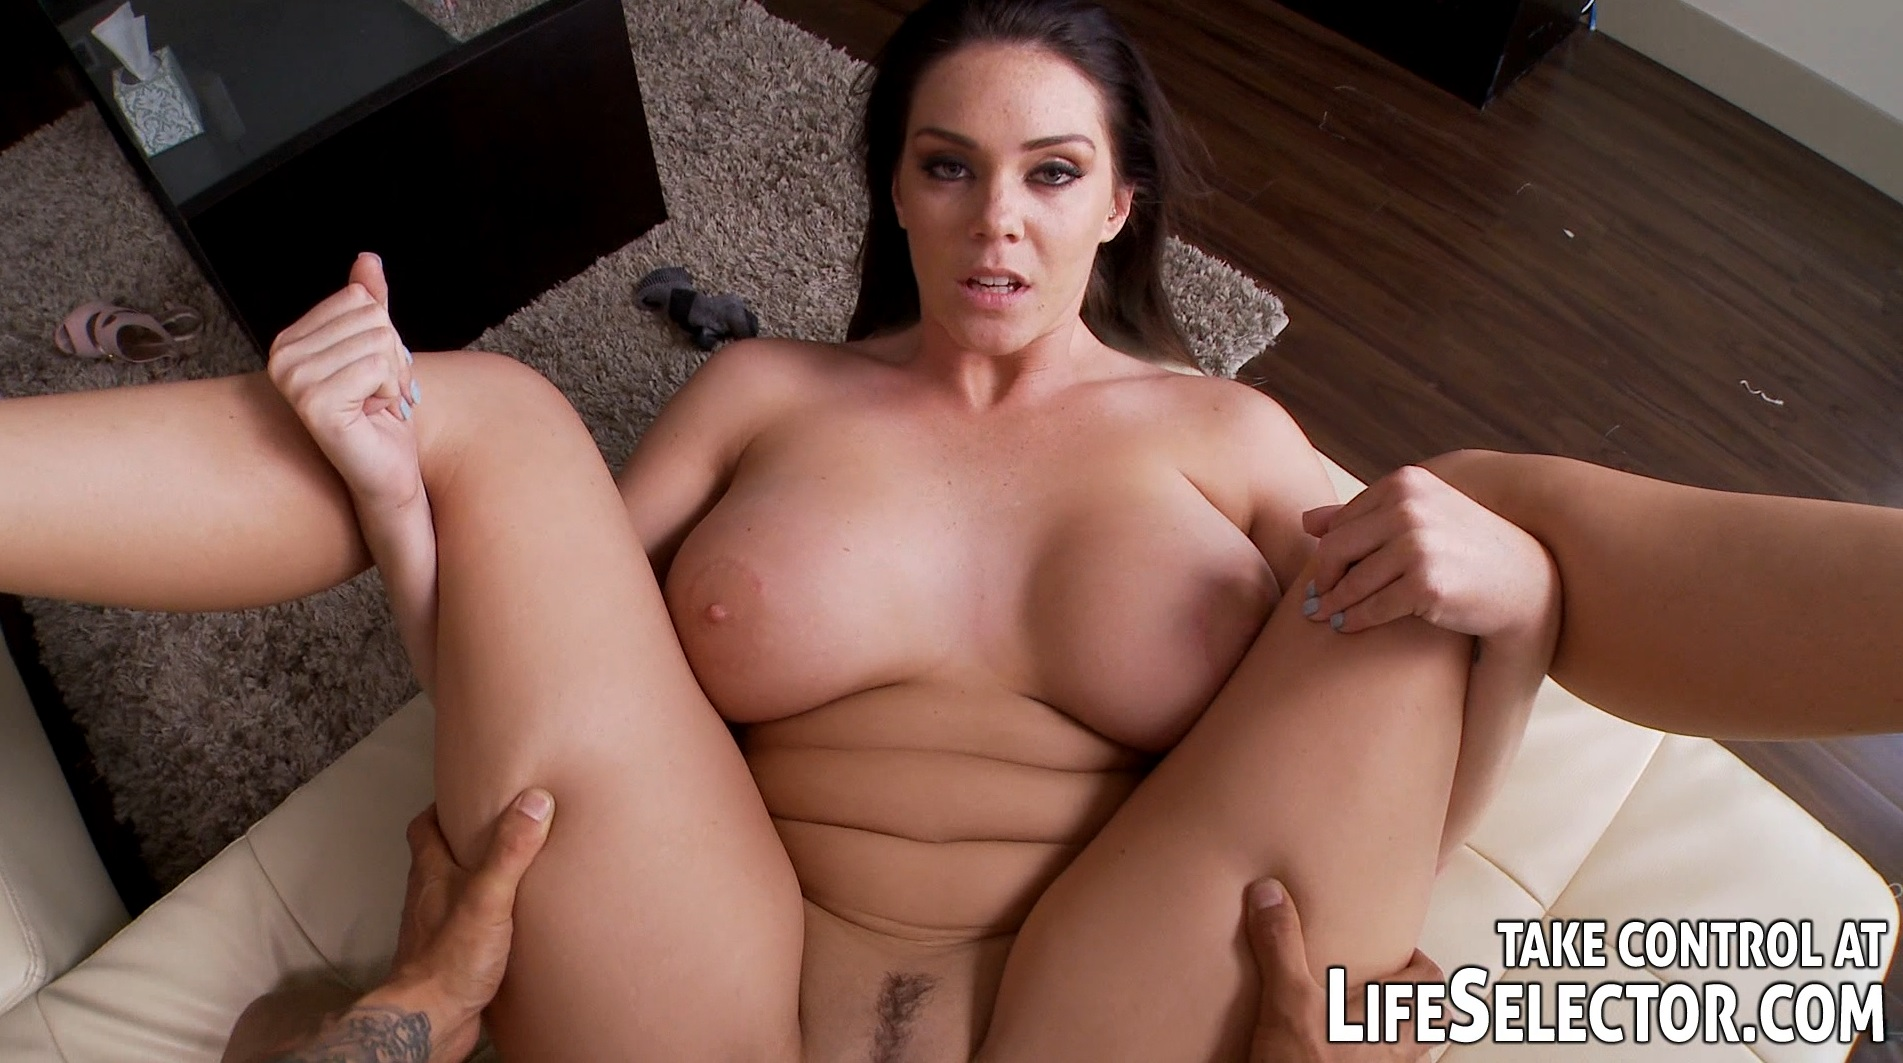 Alison Sex Video alison tyler - big boobs in action